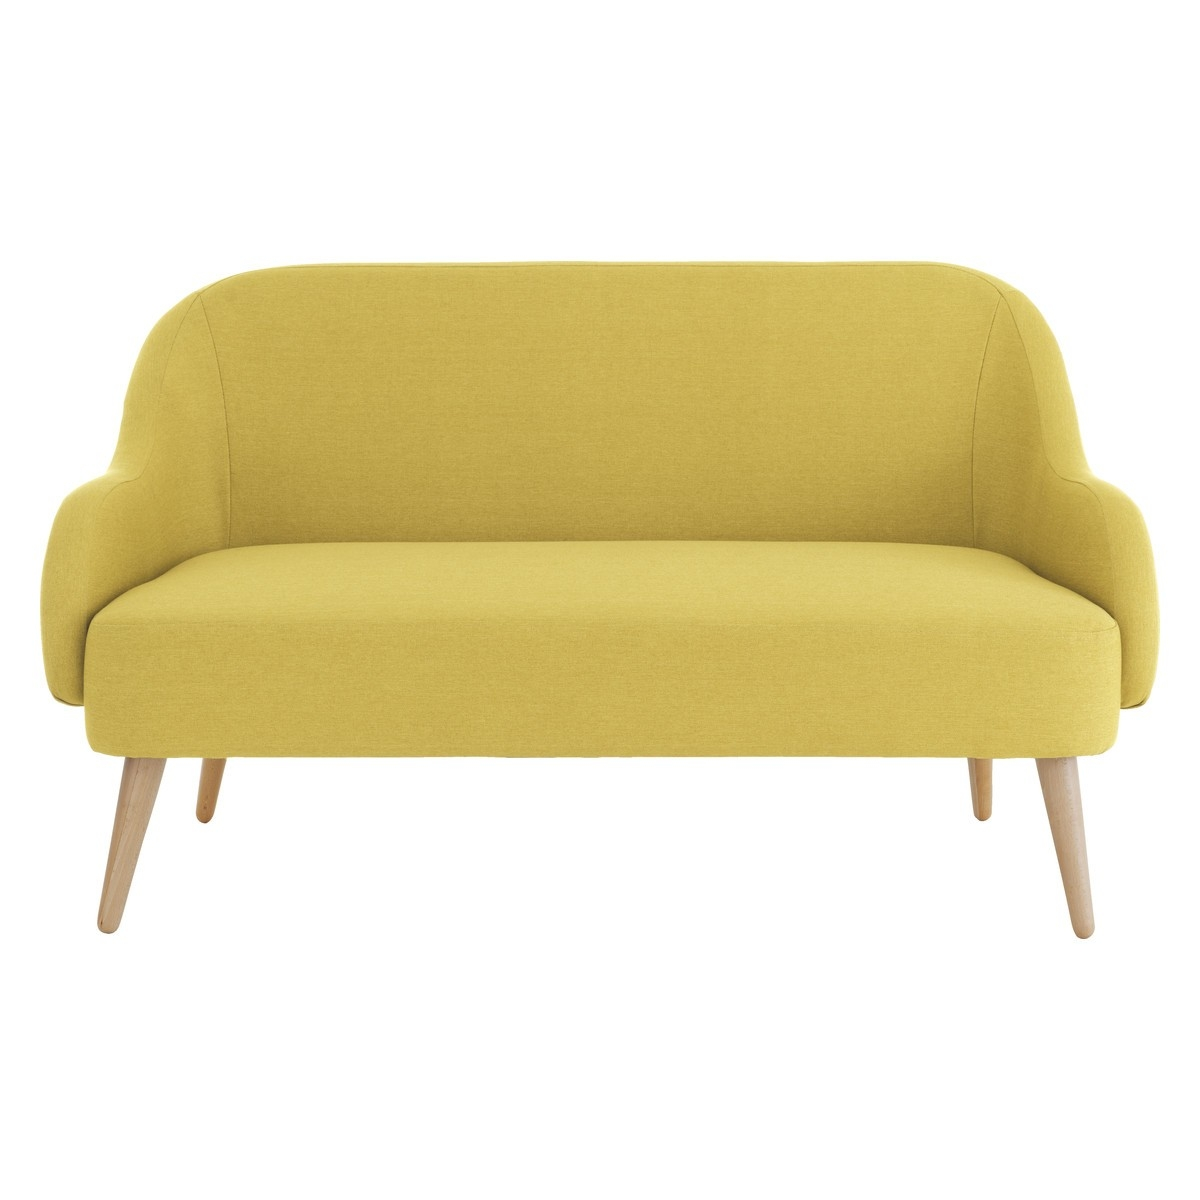 Momo Saffron Yellow Fabric 2 Seater Sofa Yellow Fabric With Two Seater Chairs (Image 9 of 15)